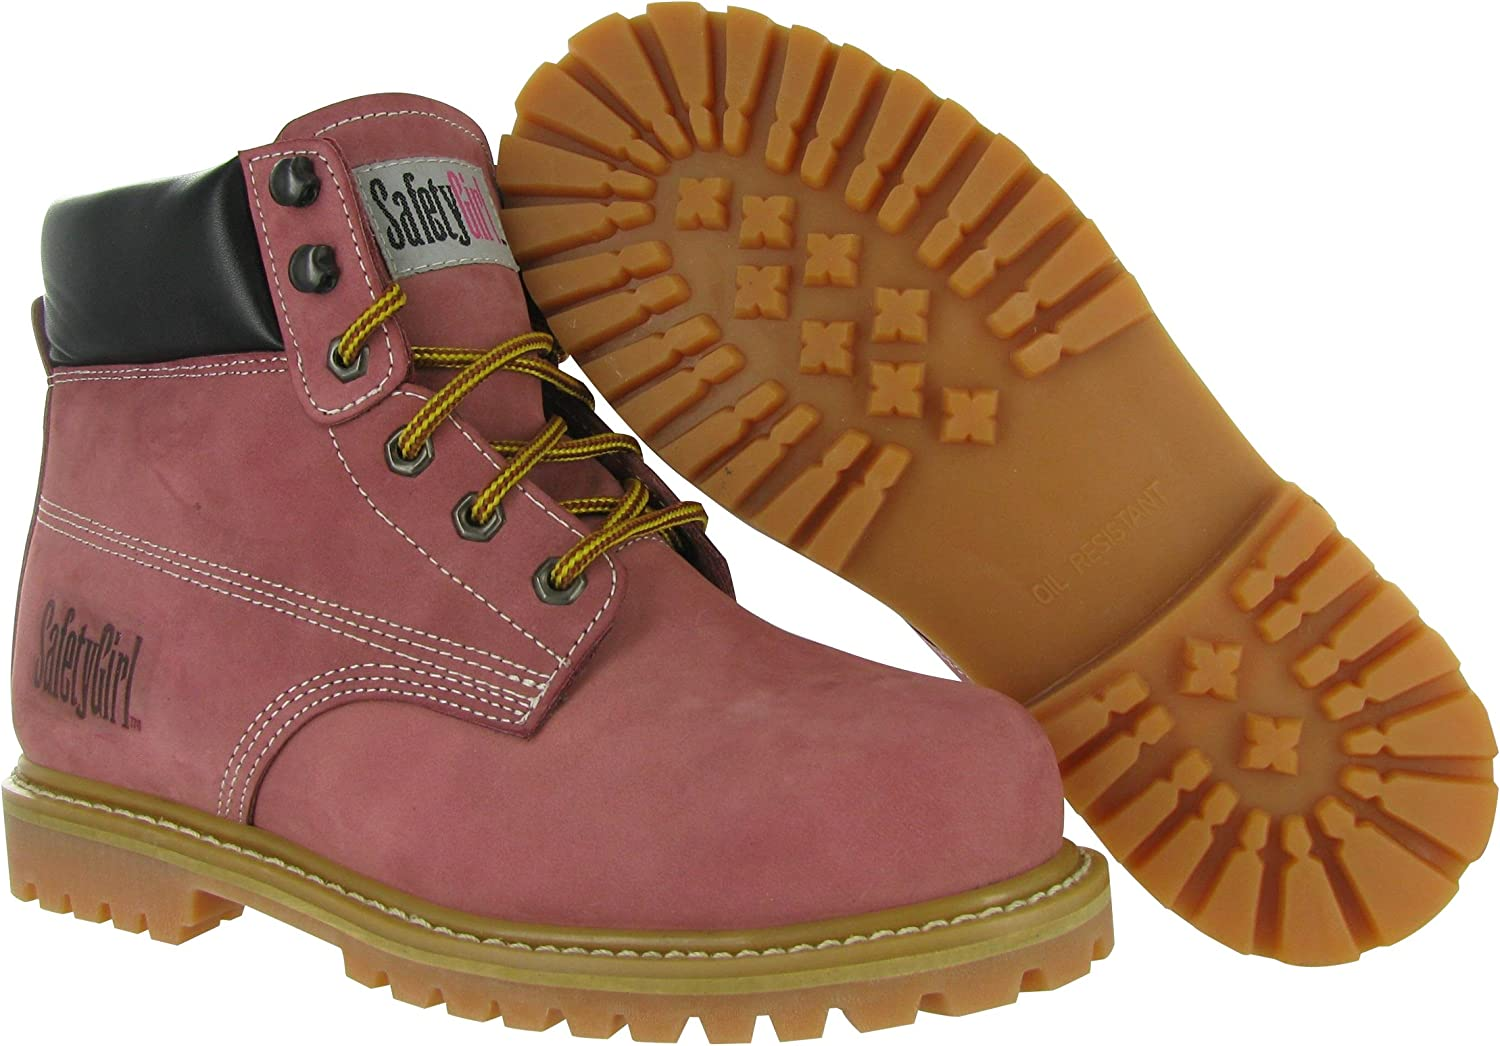 SafetyGirl GS002 Nubuck Leather Steel Toe Water Resistant Womens Work Boot, 6  Height, 8M, Light Pink